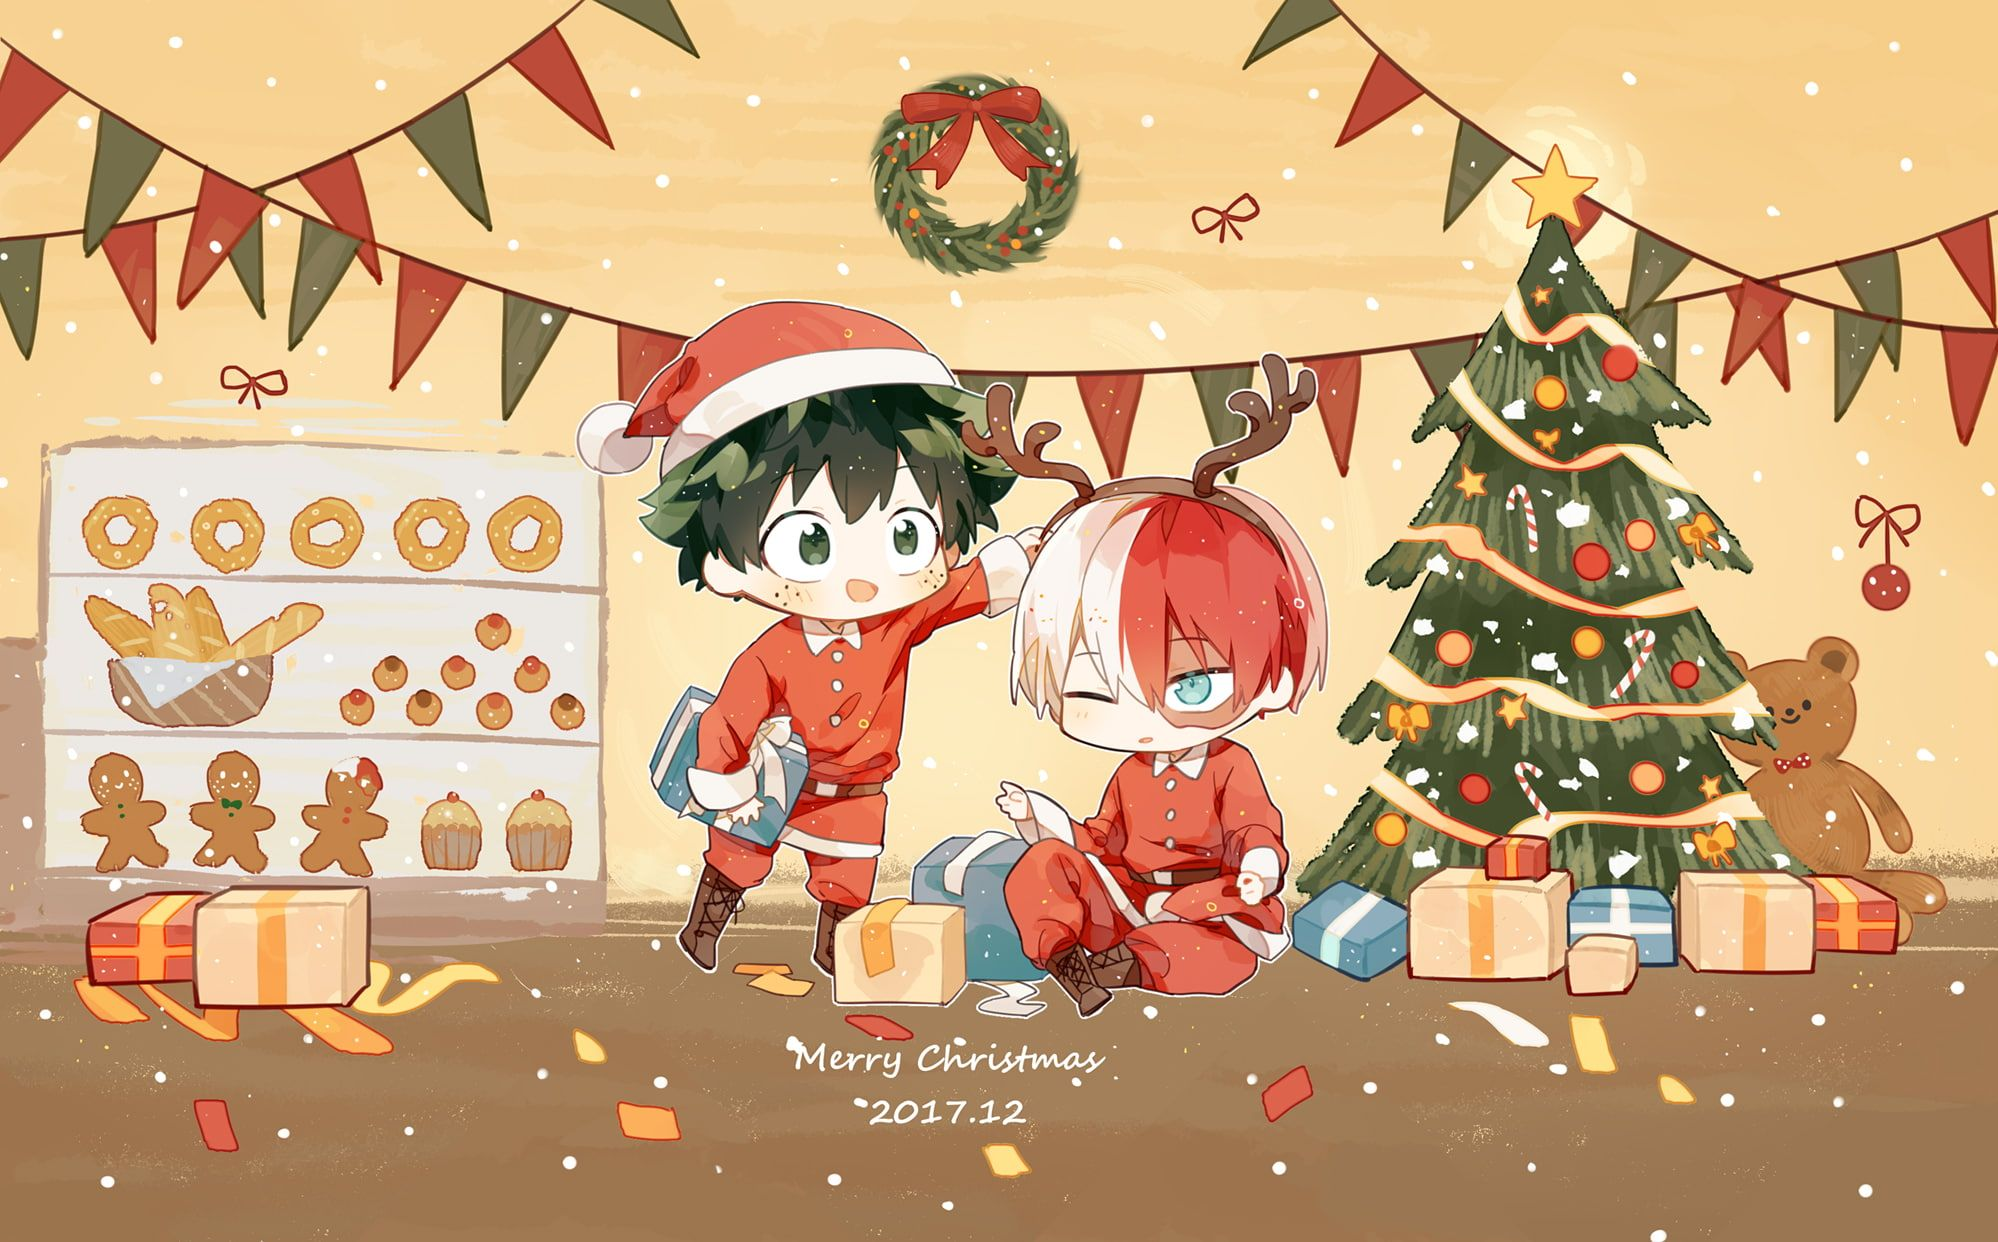 Anime My Hero Academia Christmas Izuku Midoriya Shouto Todoroki 1080p Wallpaper Hdwallpaper Desktop Anime Christmas Anime Wallpaper Anime